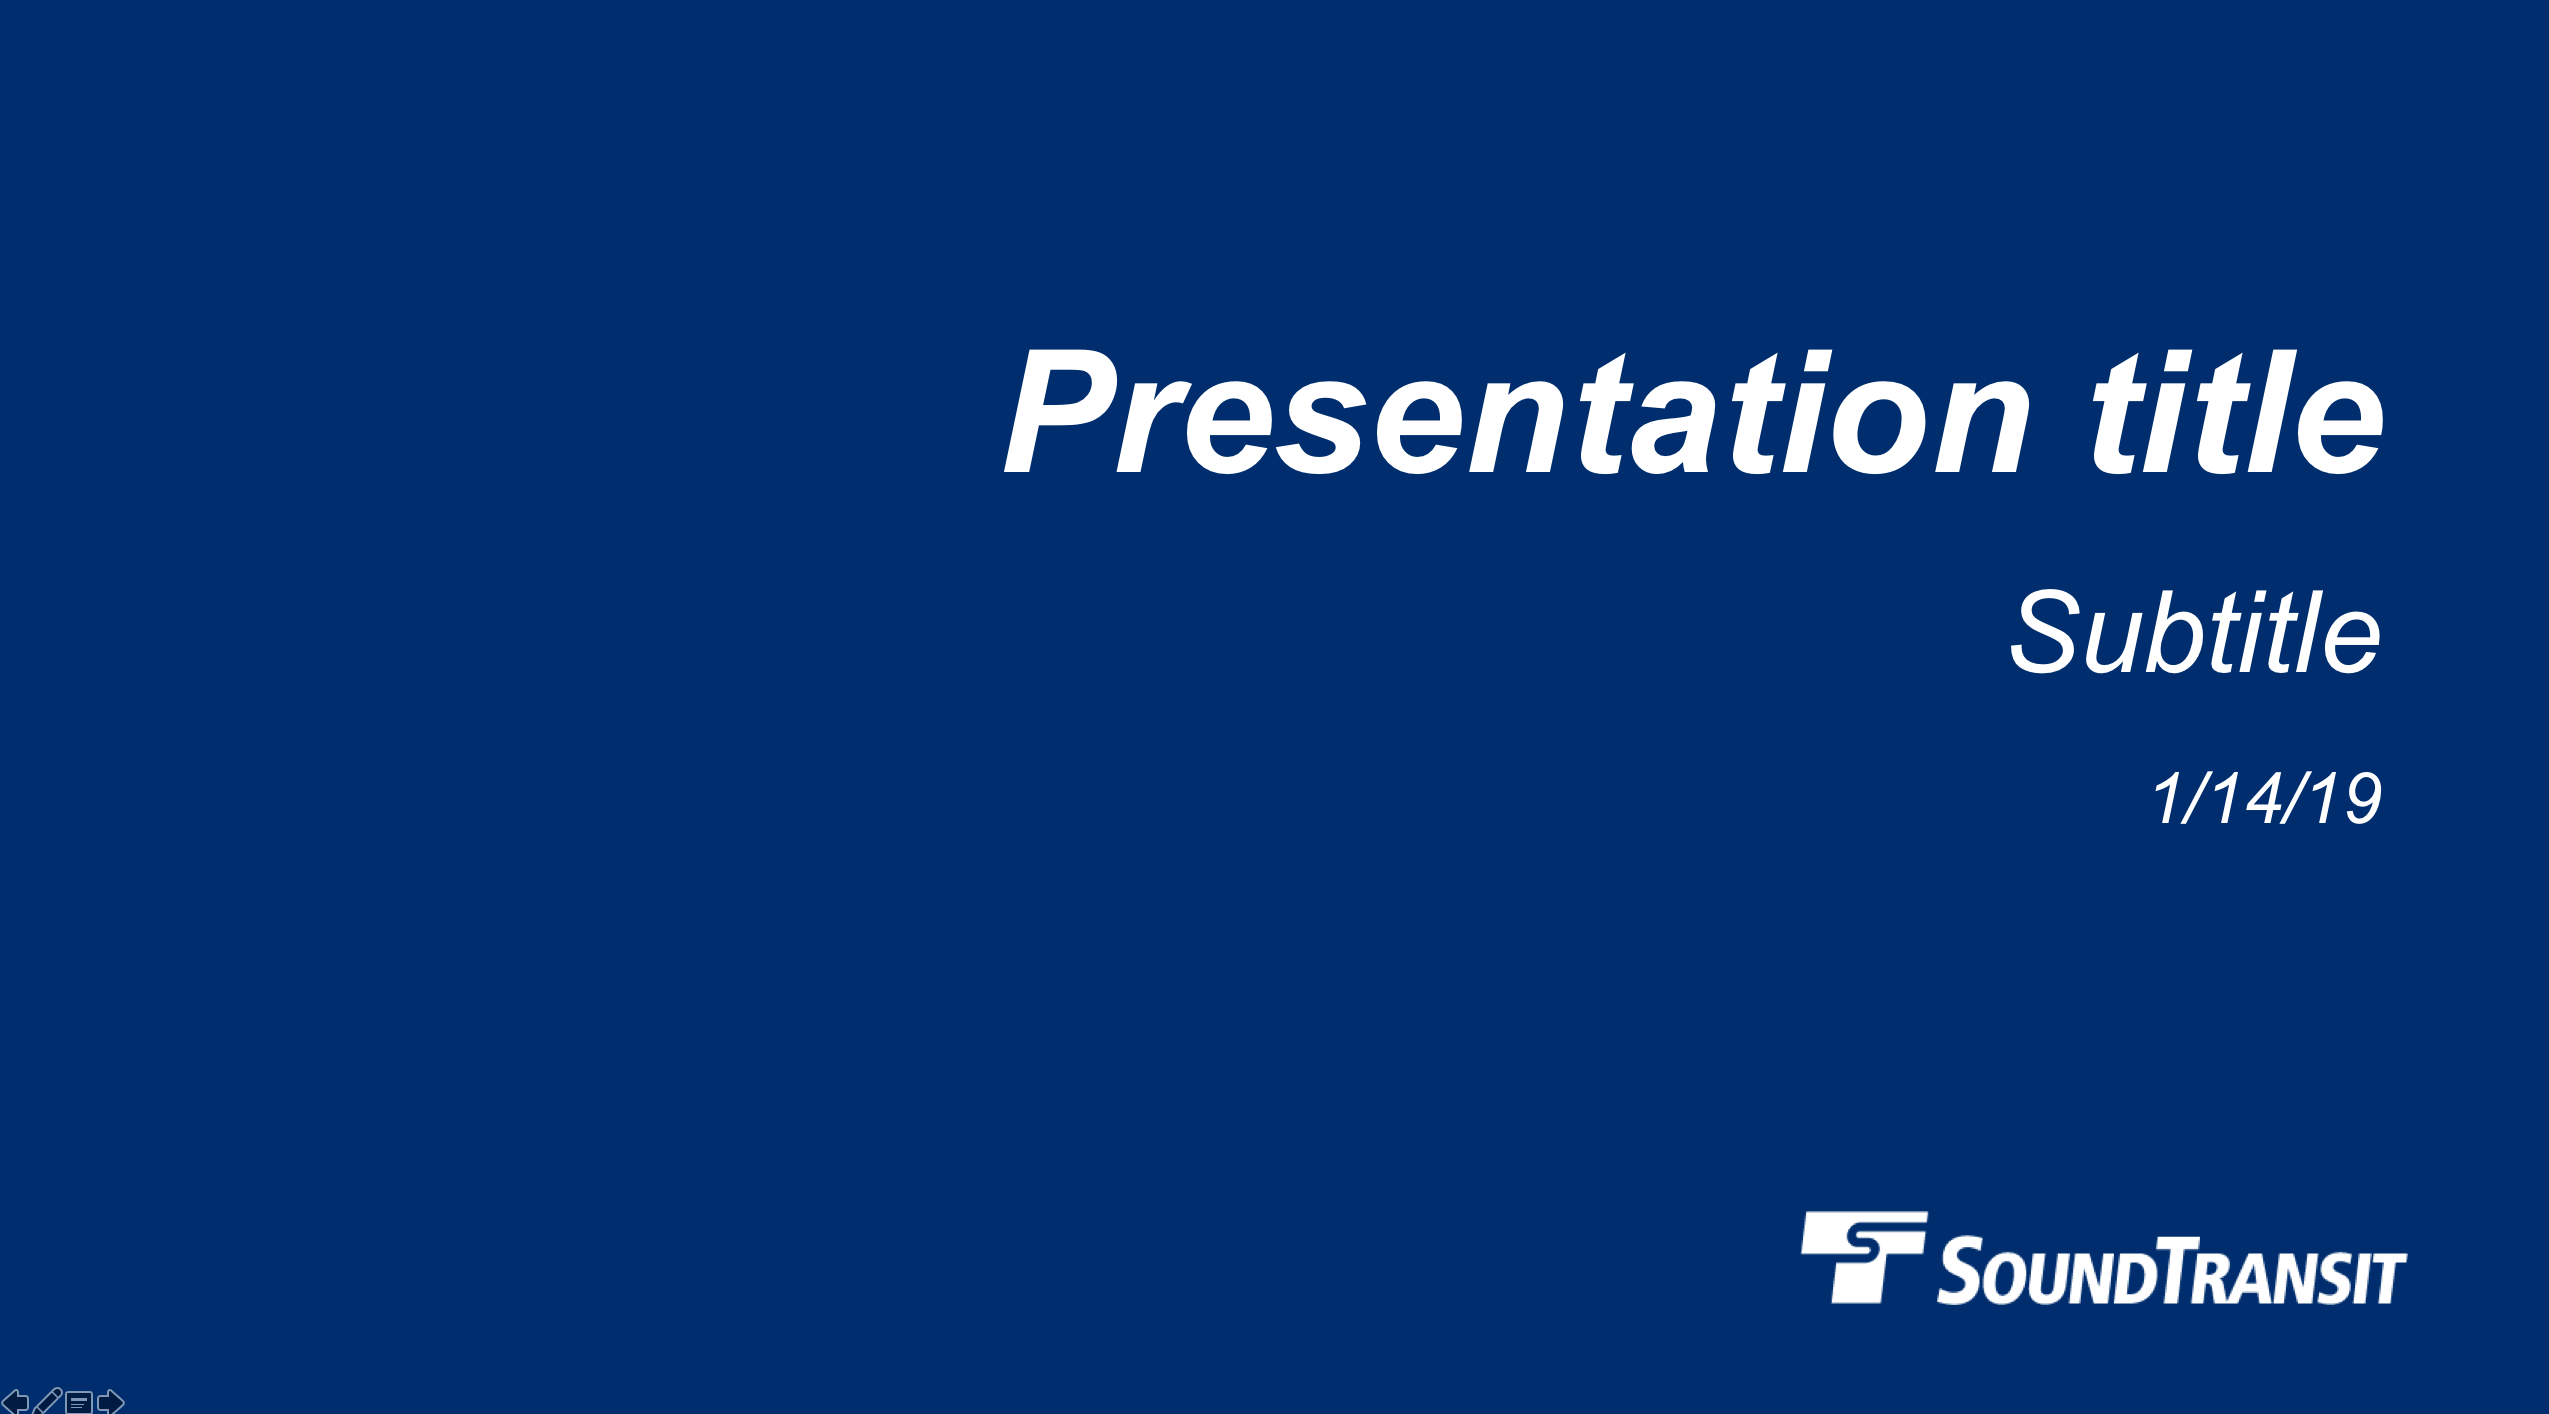 Image of agency brand powerpoint template